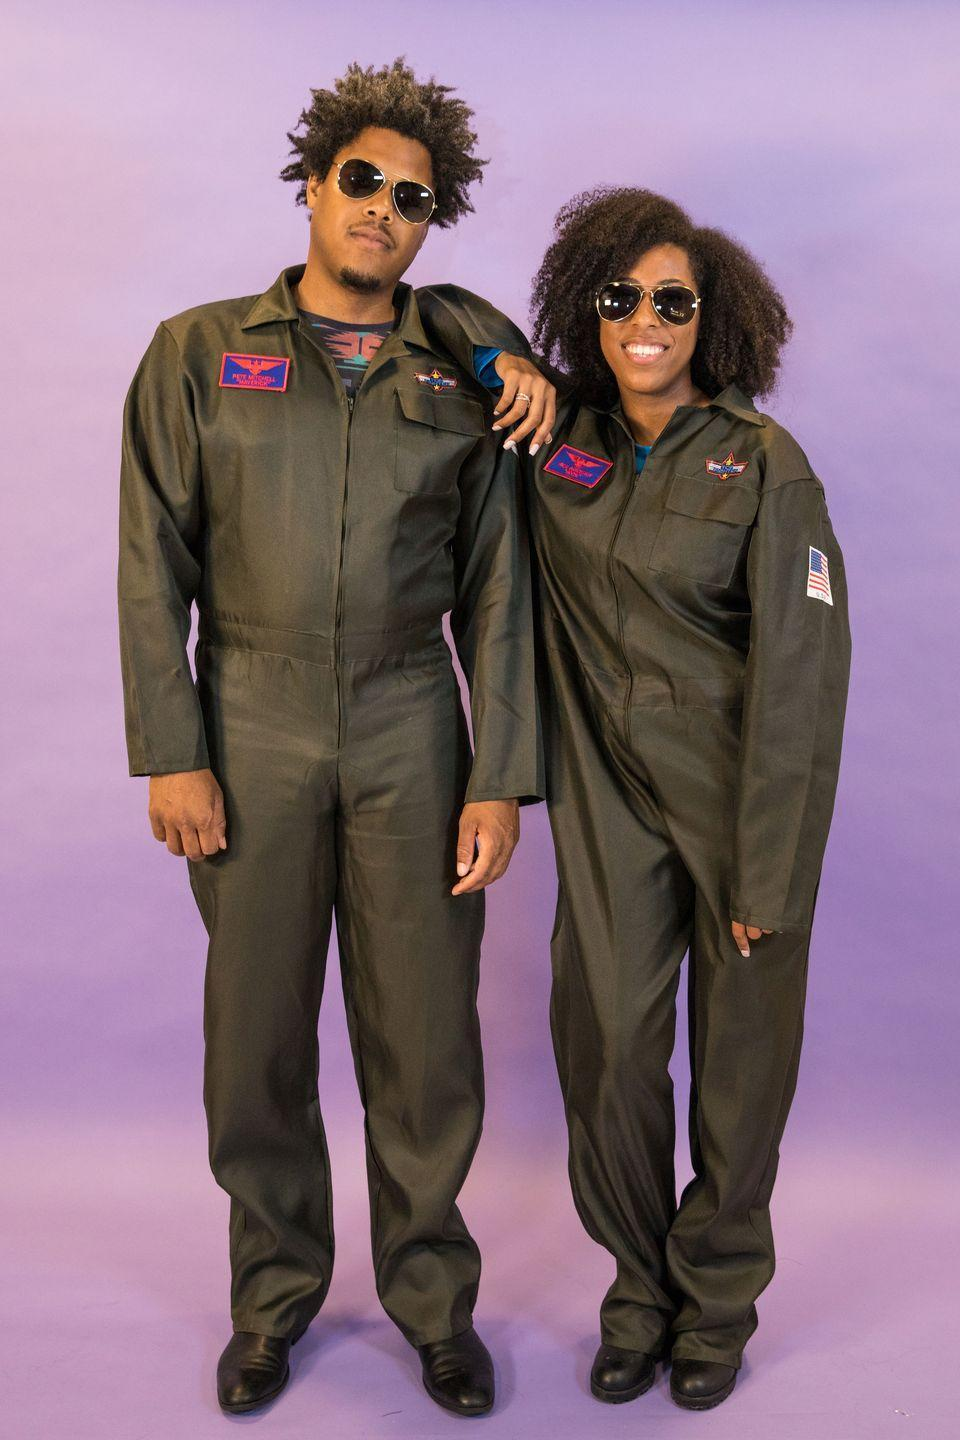 """<p>We bet Tom Cruise and Anthony Edwards would do a double-take if they saw you and your +1 in these fighter pilot costumes. At least everyone at your Halloween party will. </p><p><a class=""""link rapid-noclick-resp"""" href=""""https://www.amazon.com/Leg-Avenue-Mens-Flight-Costume/dp/B003IC0FL6/?tag=syn-yahoo-20&ascsubtag=%5Bartid%7C10055.g.2625%5Bsrc%7Cyahoo-us"""" rel=""""nofollow noopener"""" target=""""_blank"""" data-ylk=""""slk:SHOP AVIATOR JUMPSUITS"""">SHOP AVIATOR JUMPSUITS</a> </p>"""